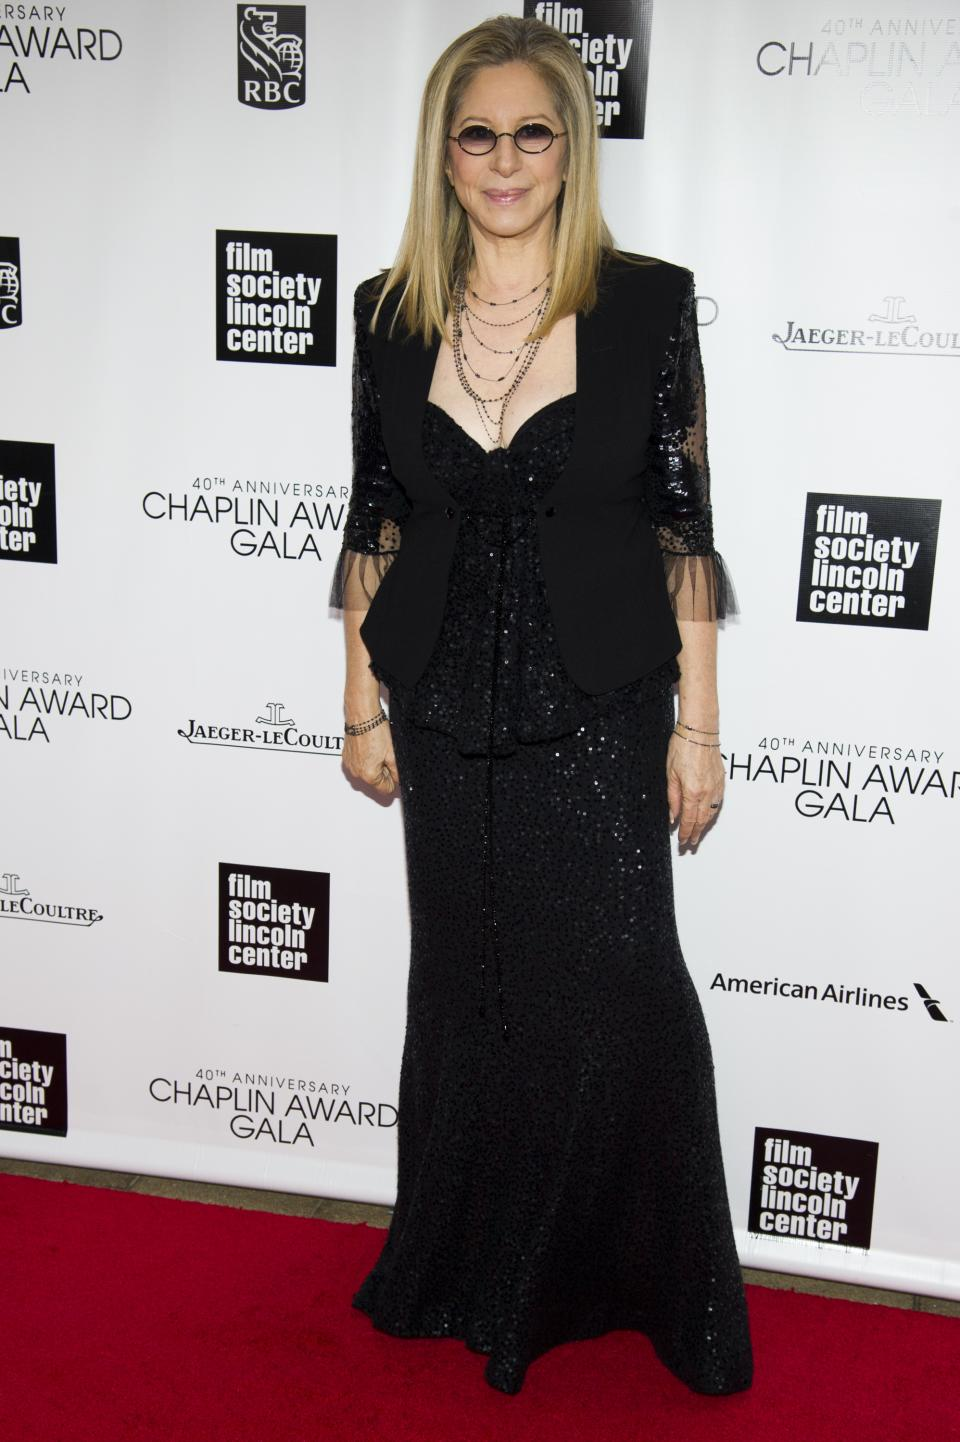 Honoree Barbra Streisand attends the Film Society of Lincoln Center's 40th Annual Chaplin Award Gala on Monday, April 22, 2013, in New York. (Photo by Charles Sykes/Invision/AP)